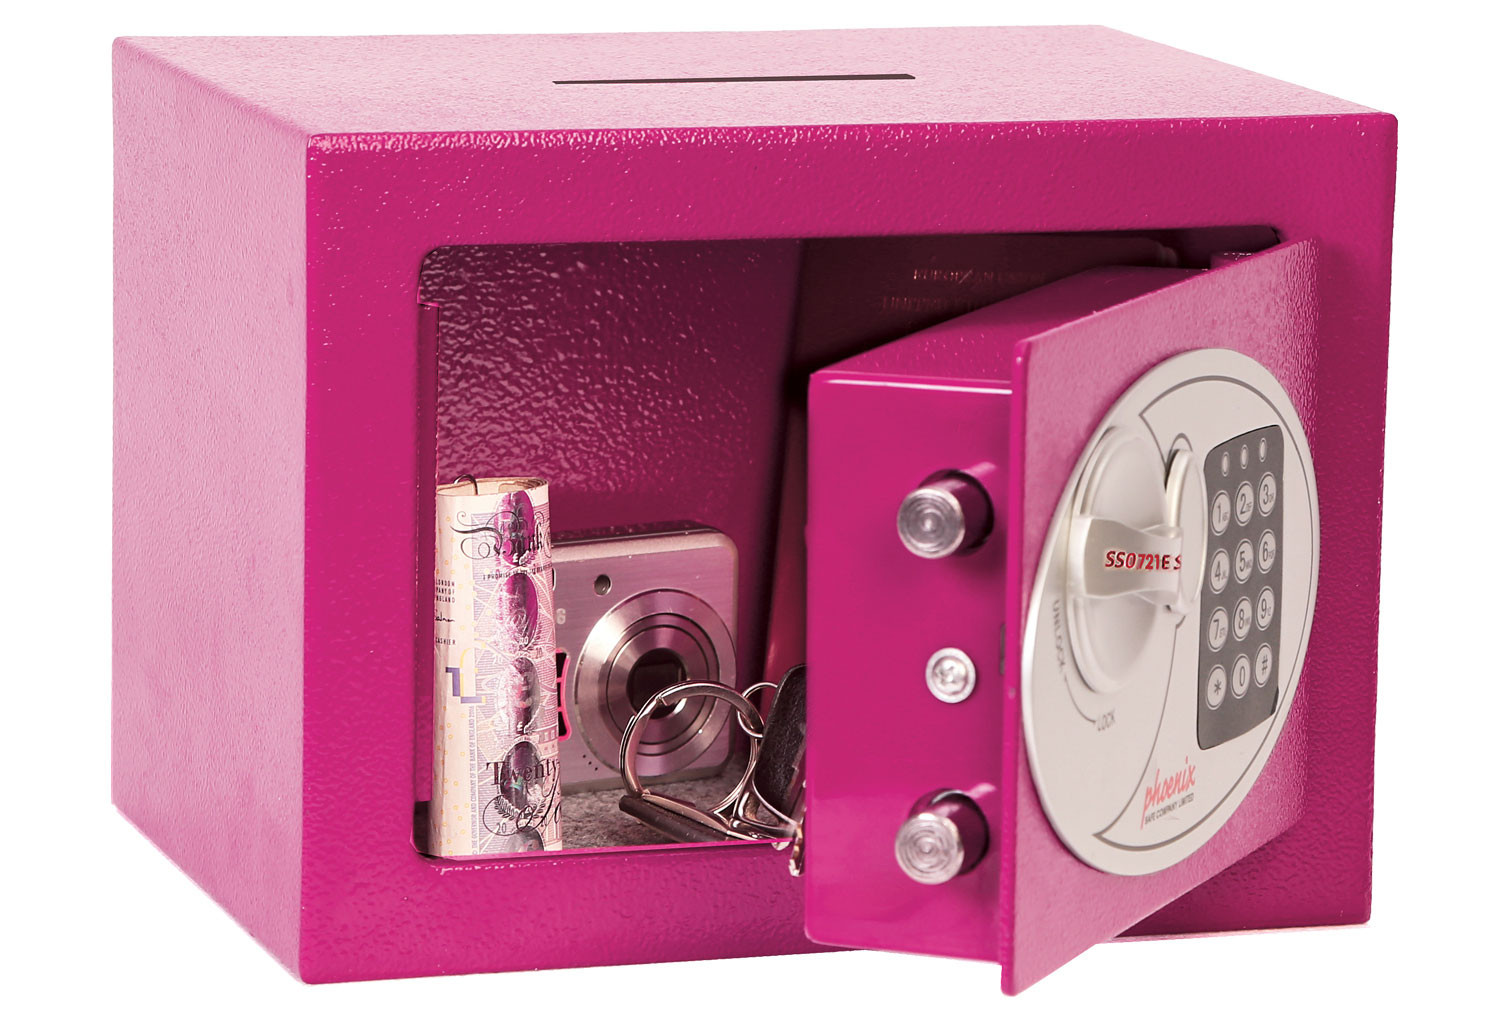 Phoenix SS0721EPD Compact Home Office Safe With Electronic Lock Pink (5ltrs)